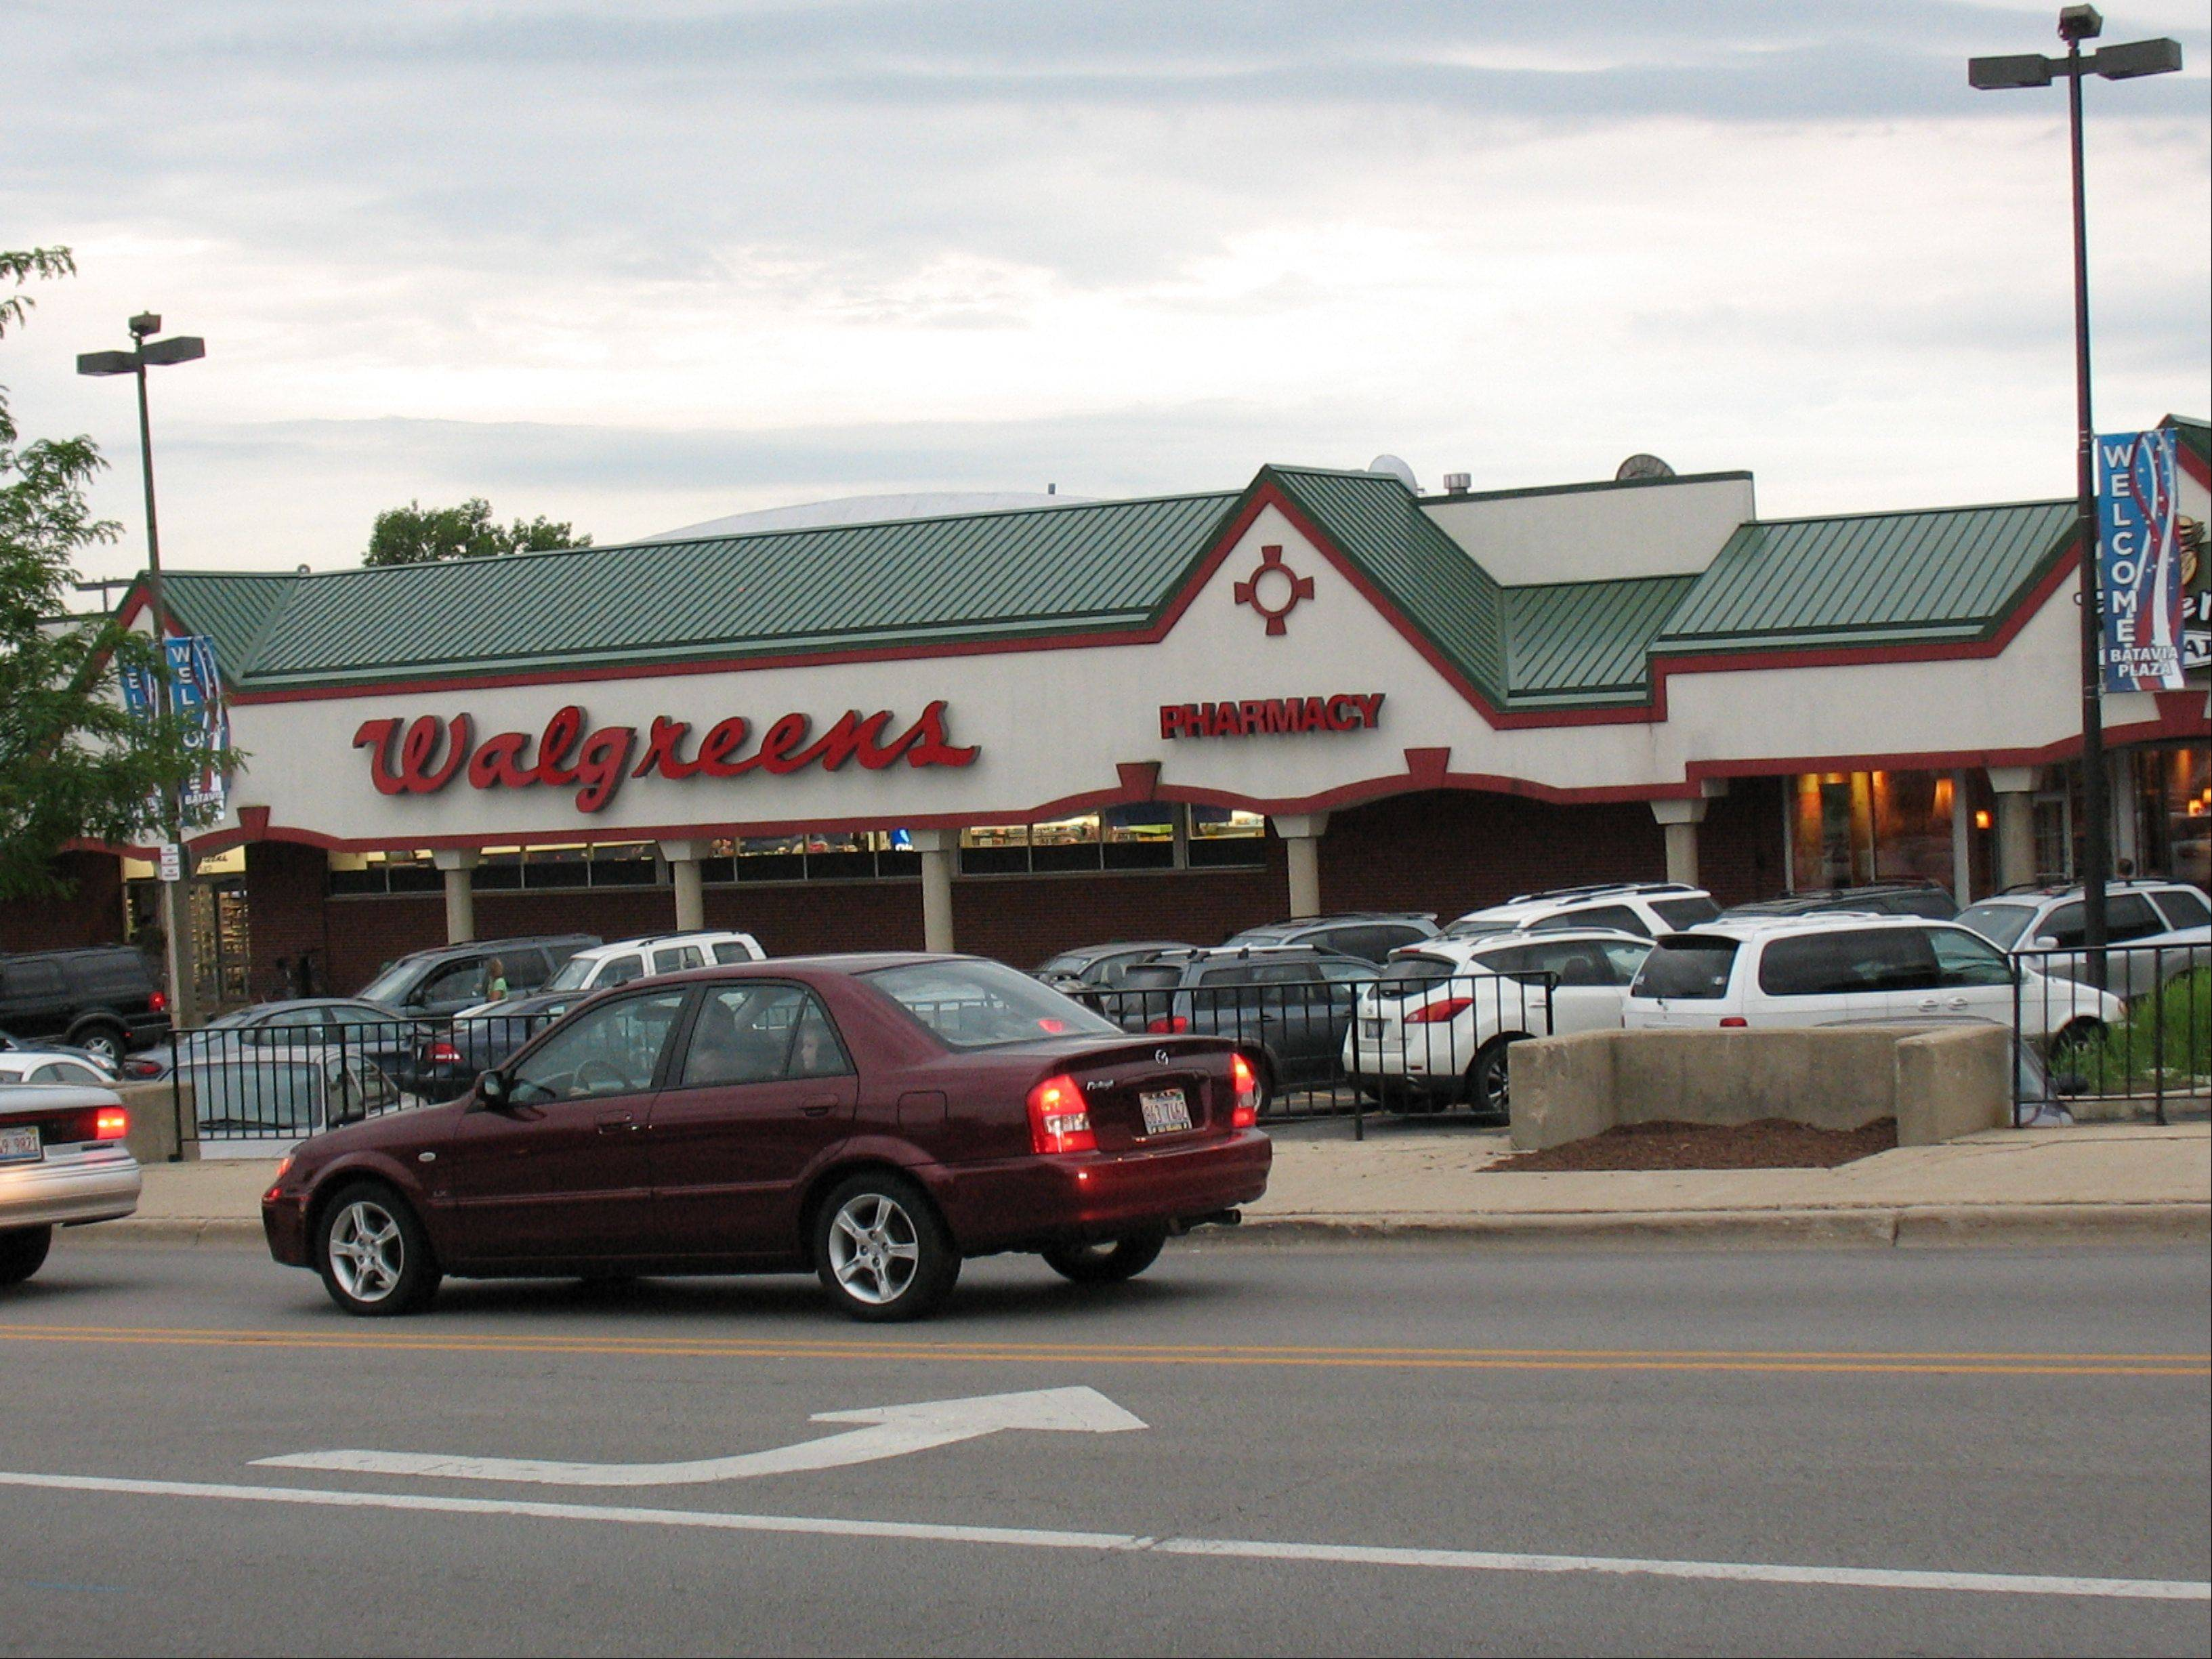 Deerfield-based Walgreen Co. has completed its $438 million purchase of a regional drugstore chain that operates in several states under the USA Drug, Super D Drug and Med-X names.